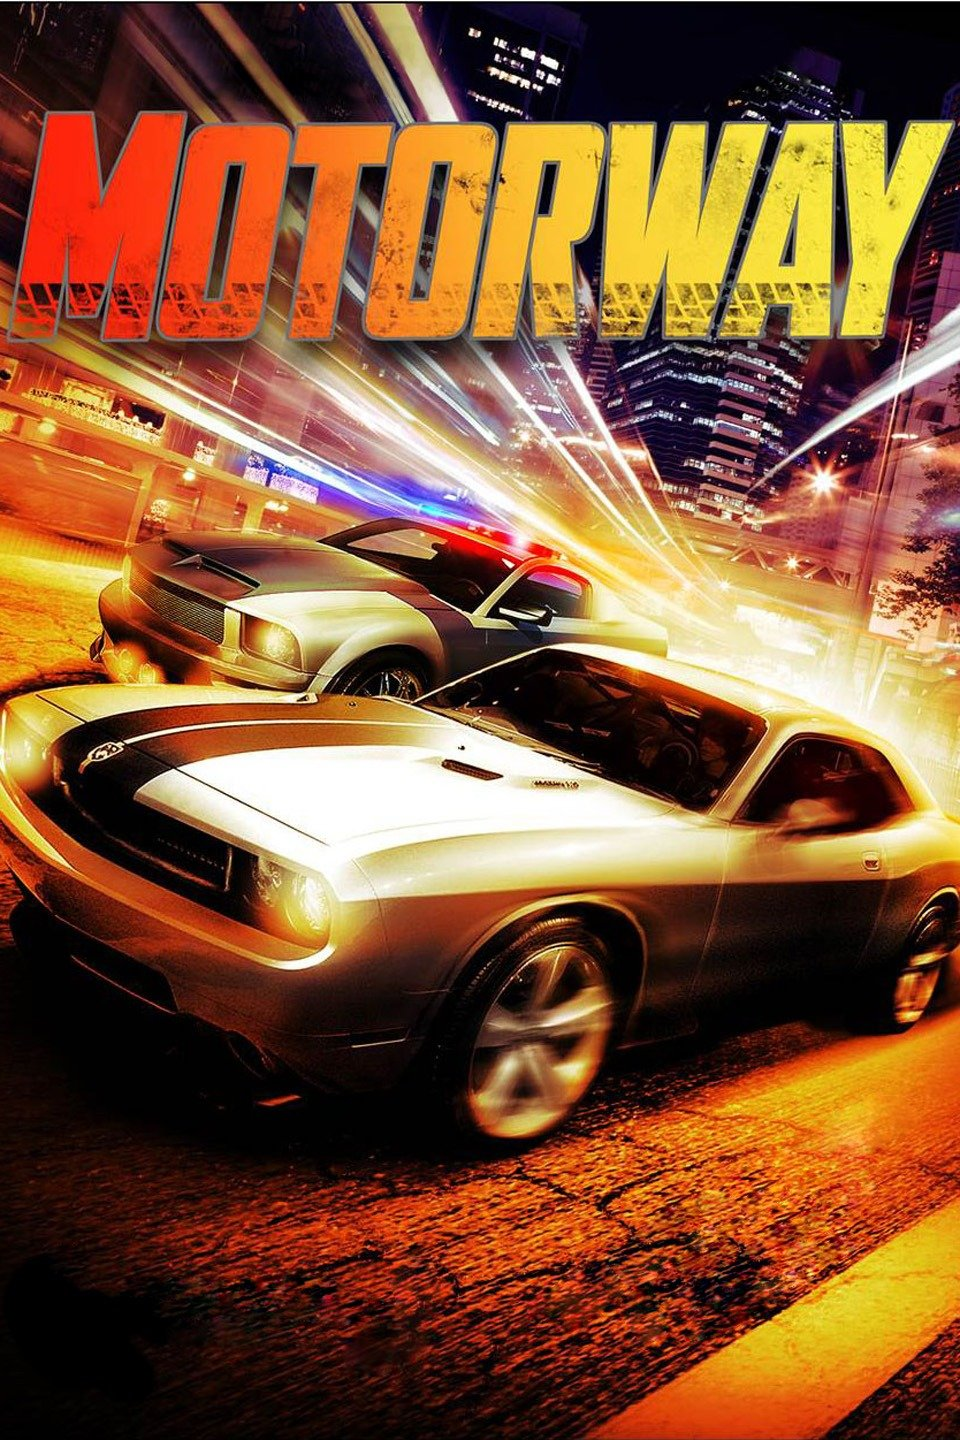 Motorway 2012 Hindi Dual Audio Movie Download HDRip 720p 550MB High Speed Google Drive Link